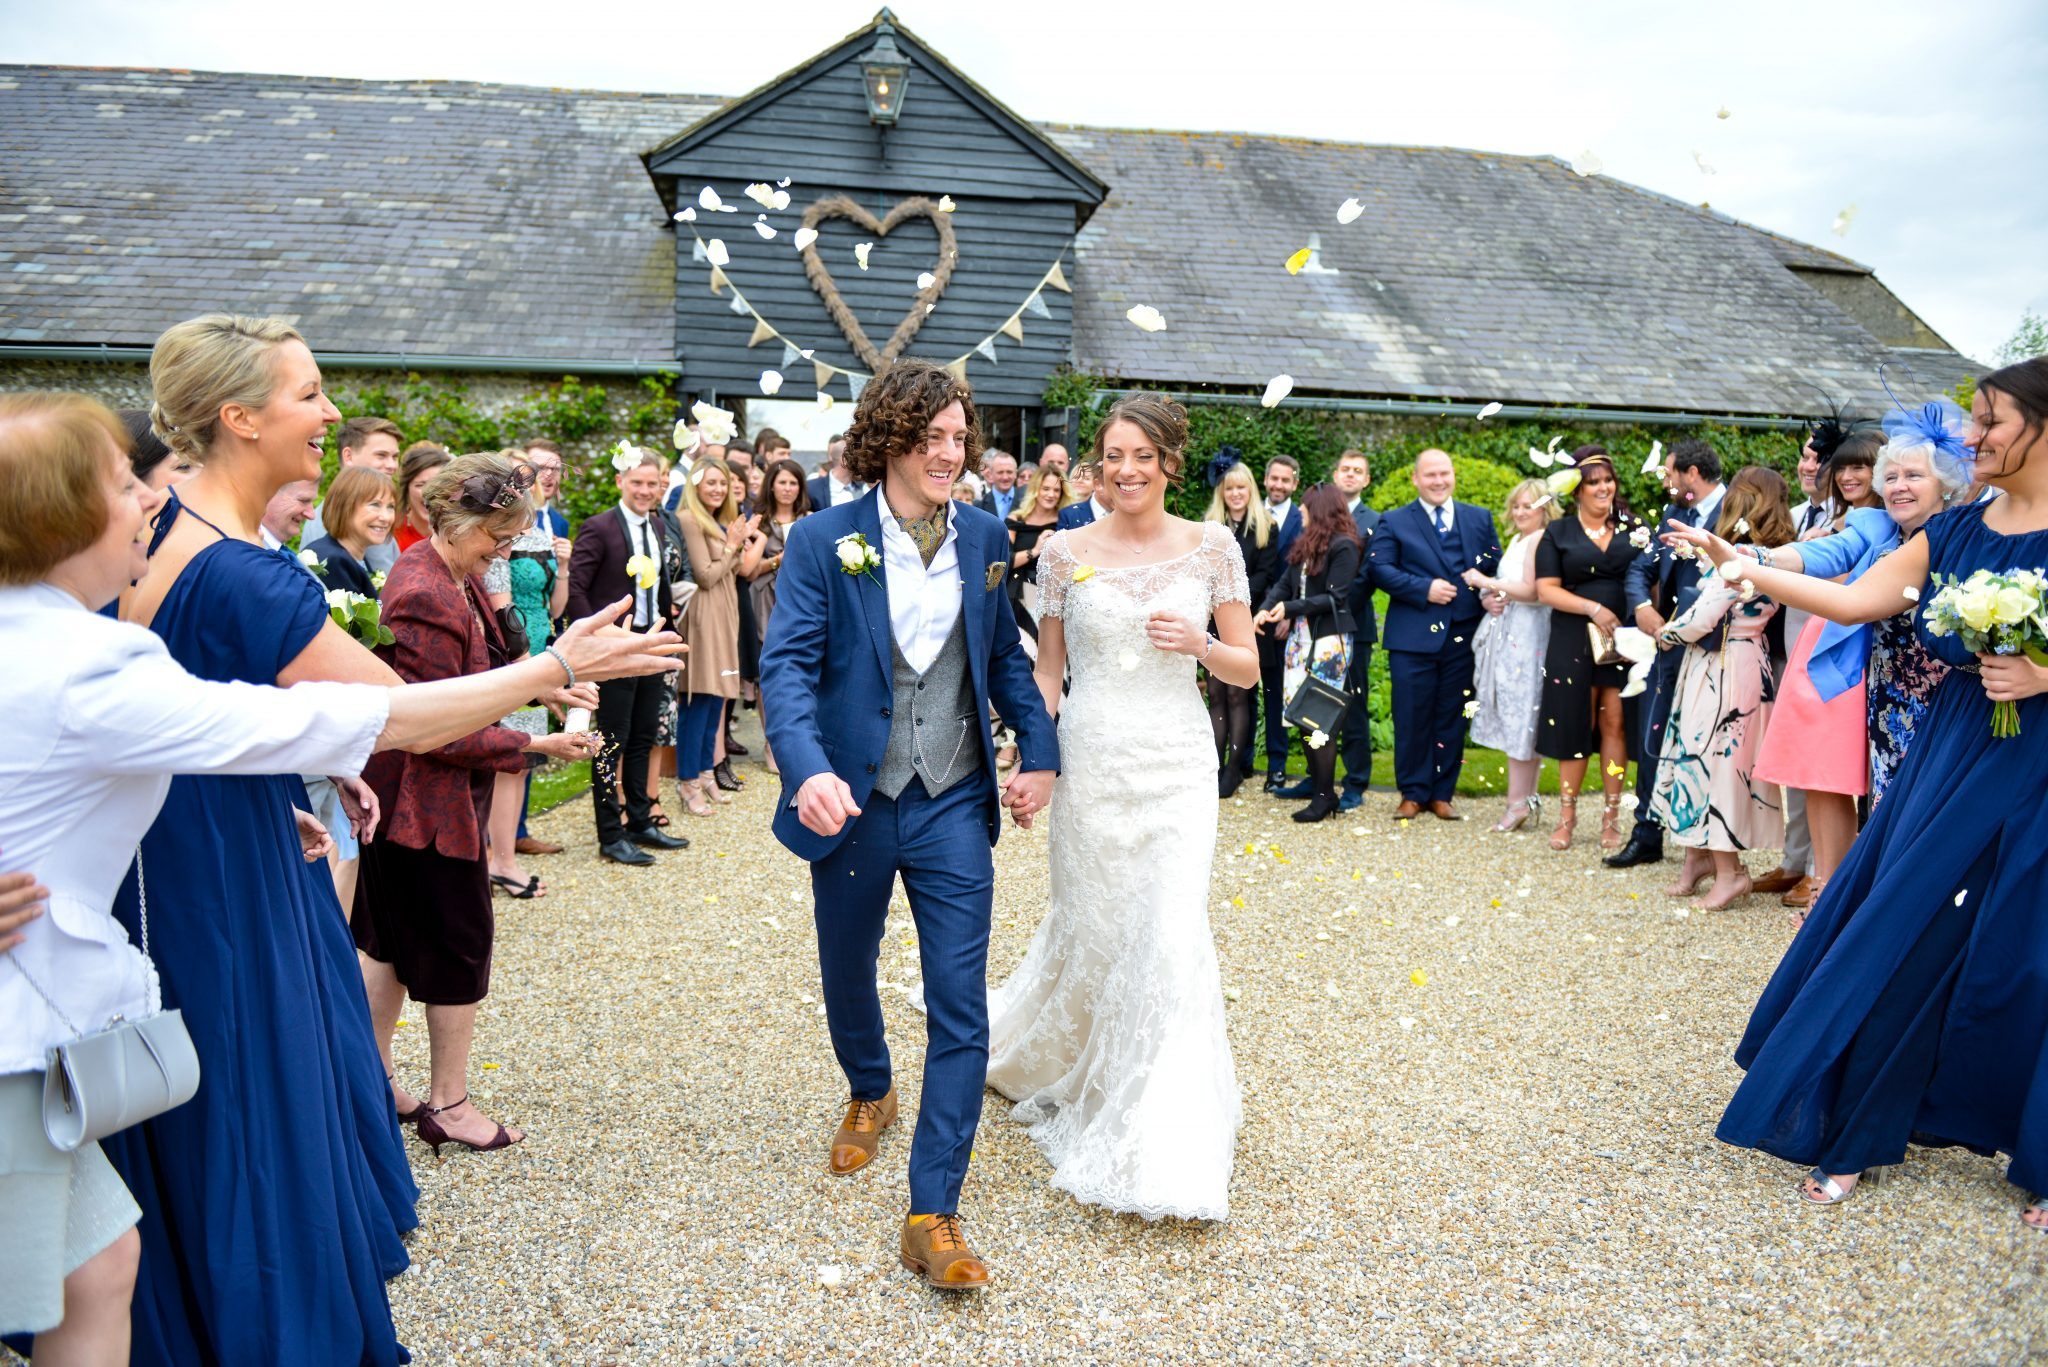 wedding confetti at upwaltham barn in sussex